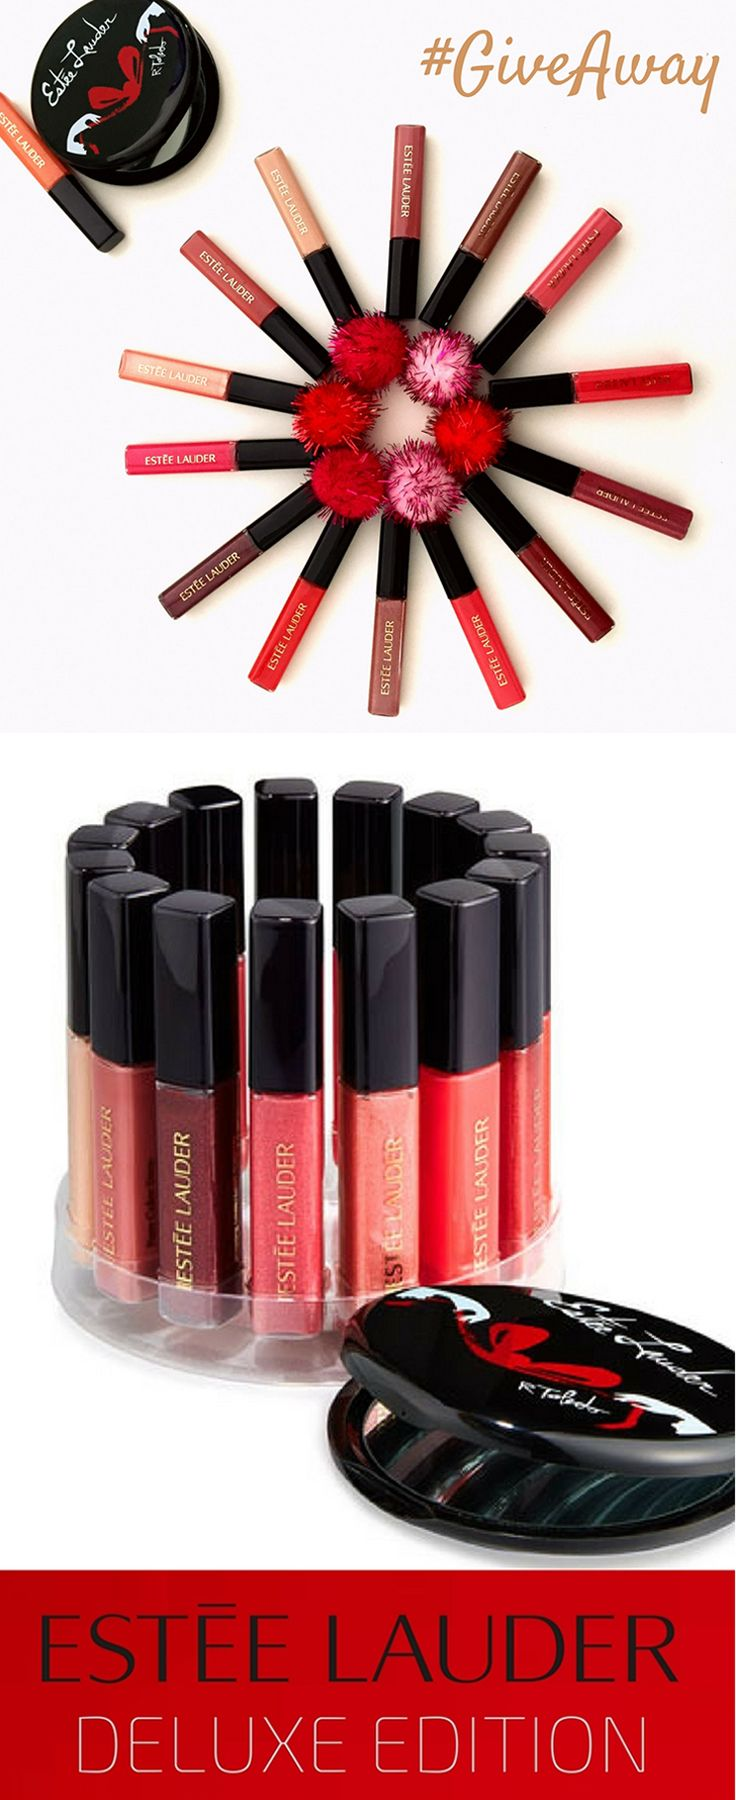 Your chance to win the Estee Lauder Gloss Go Round Deluxe